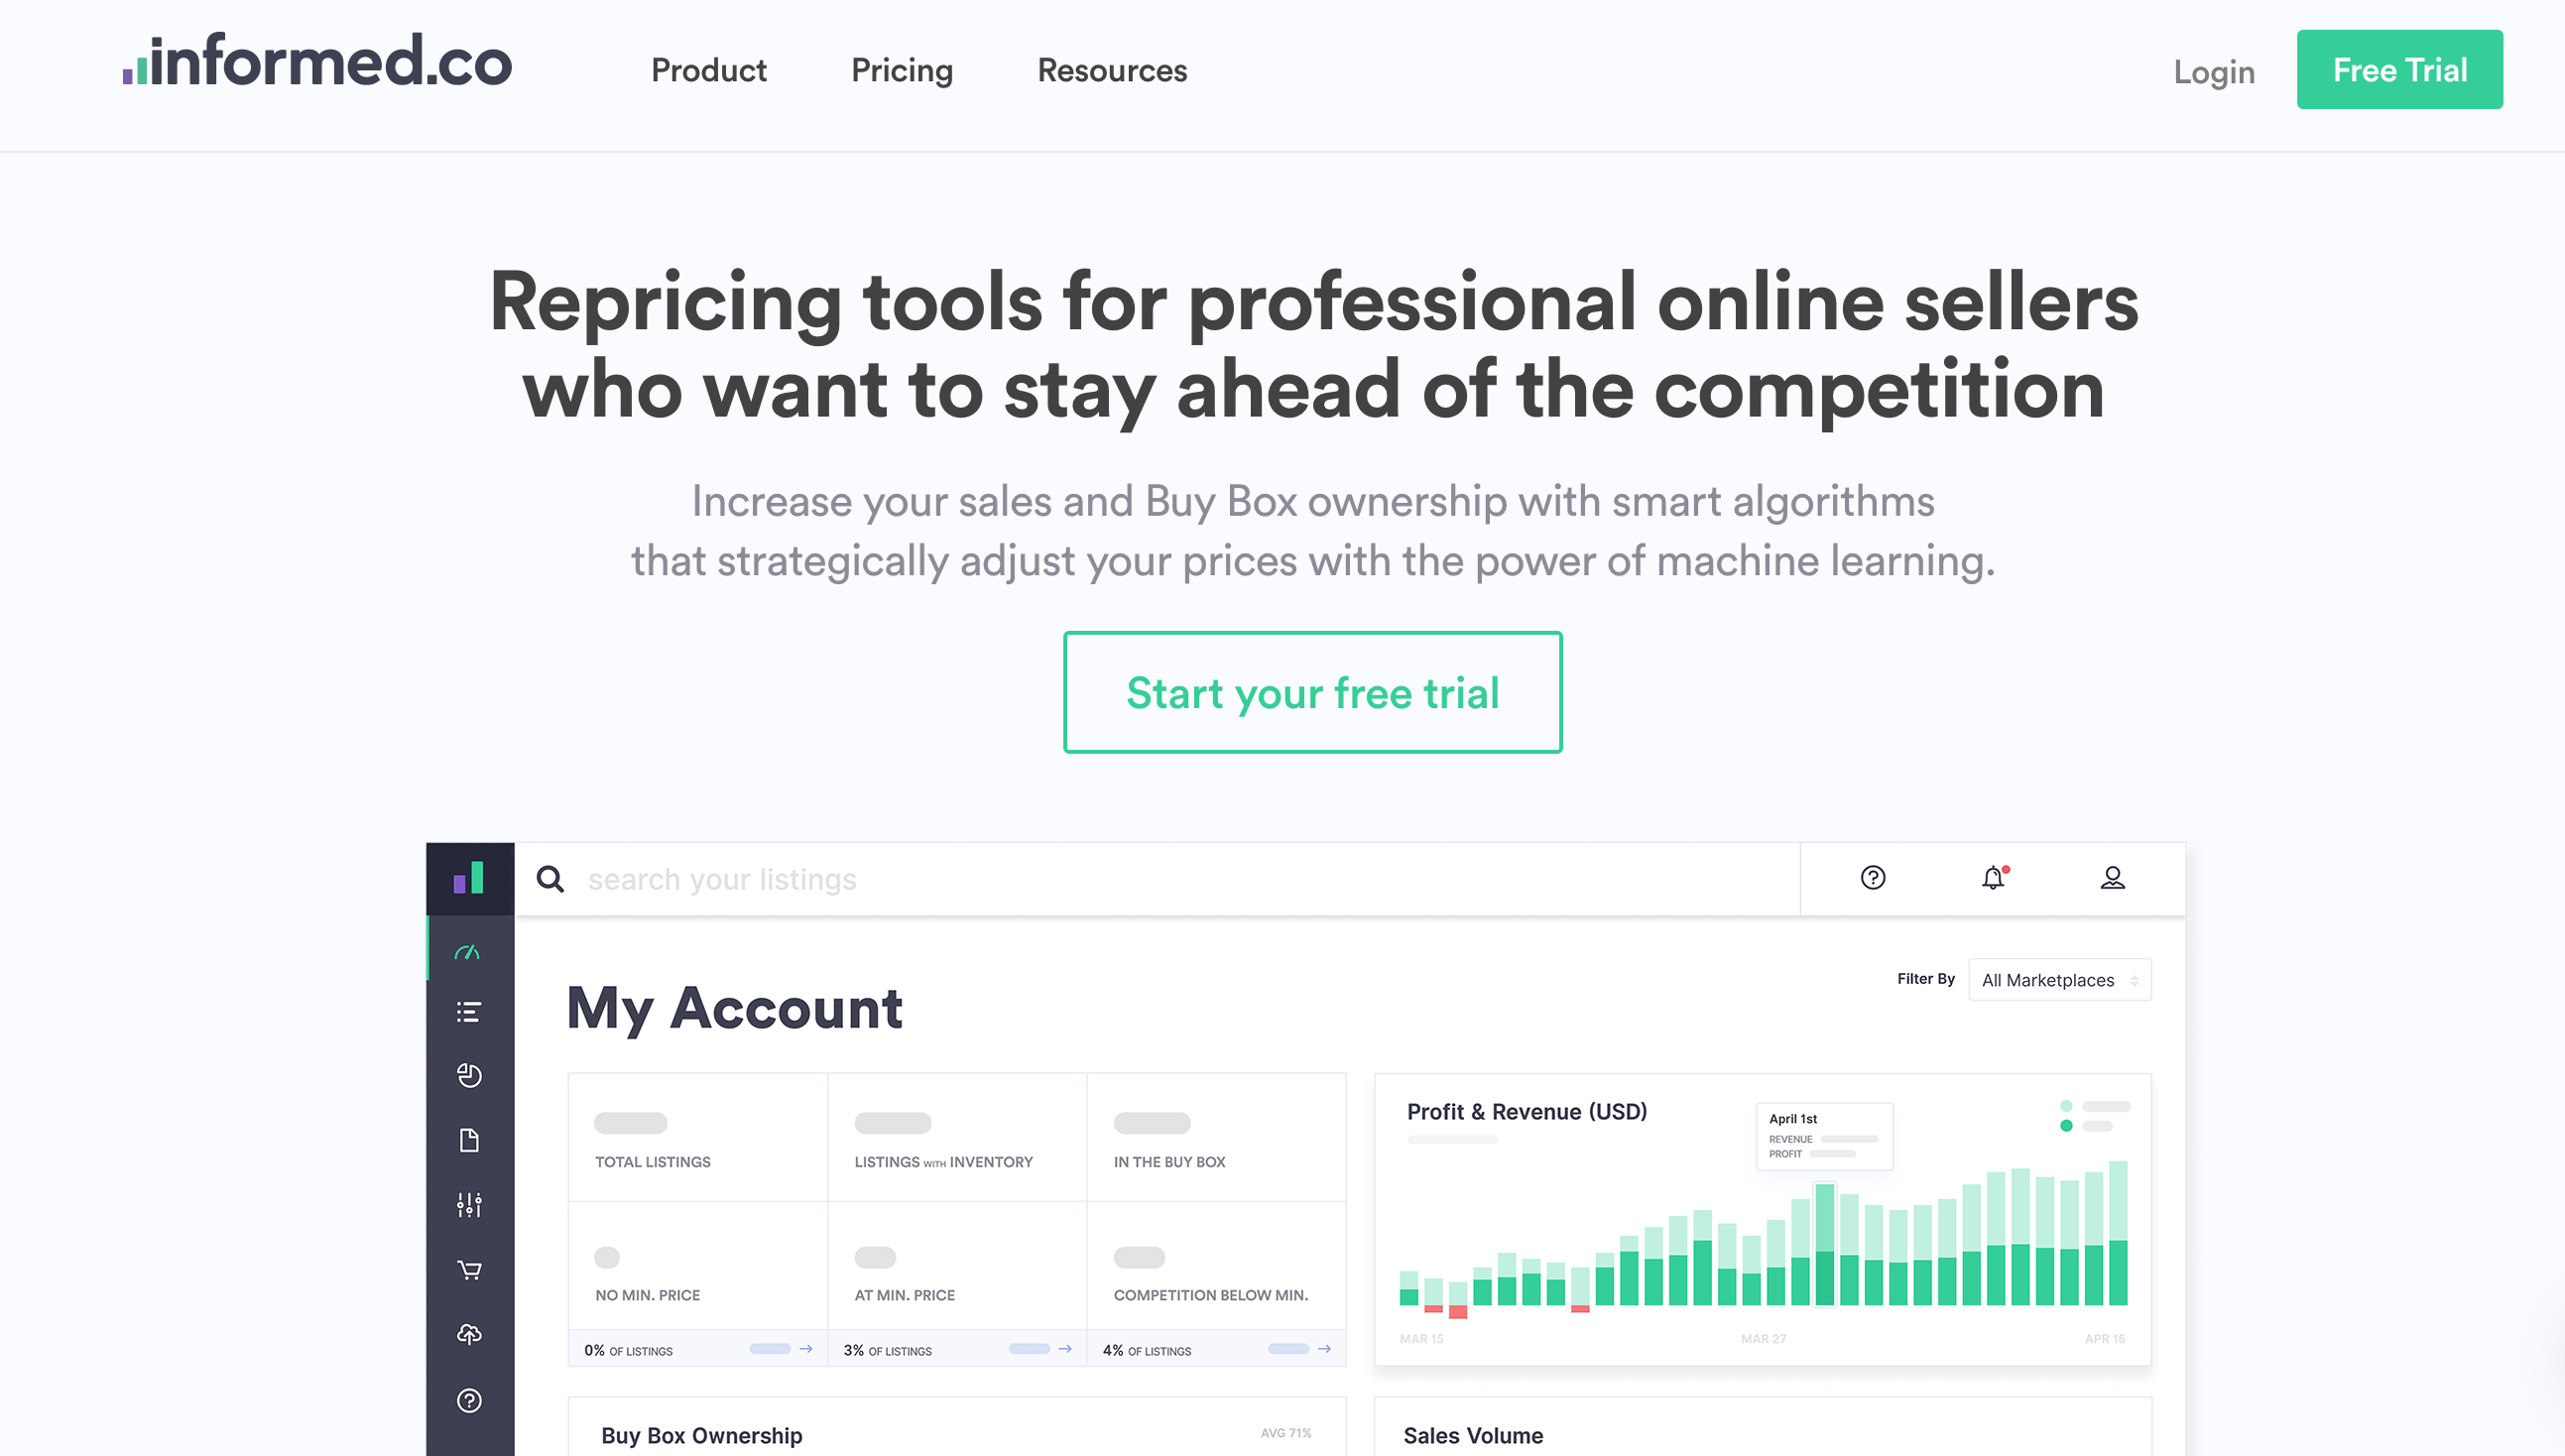 Informed.co - Repricing Tool